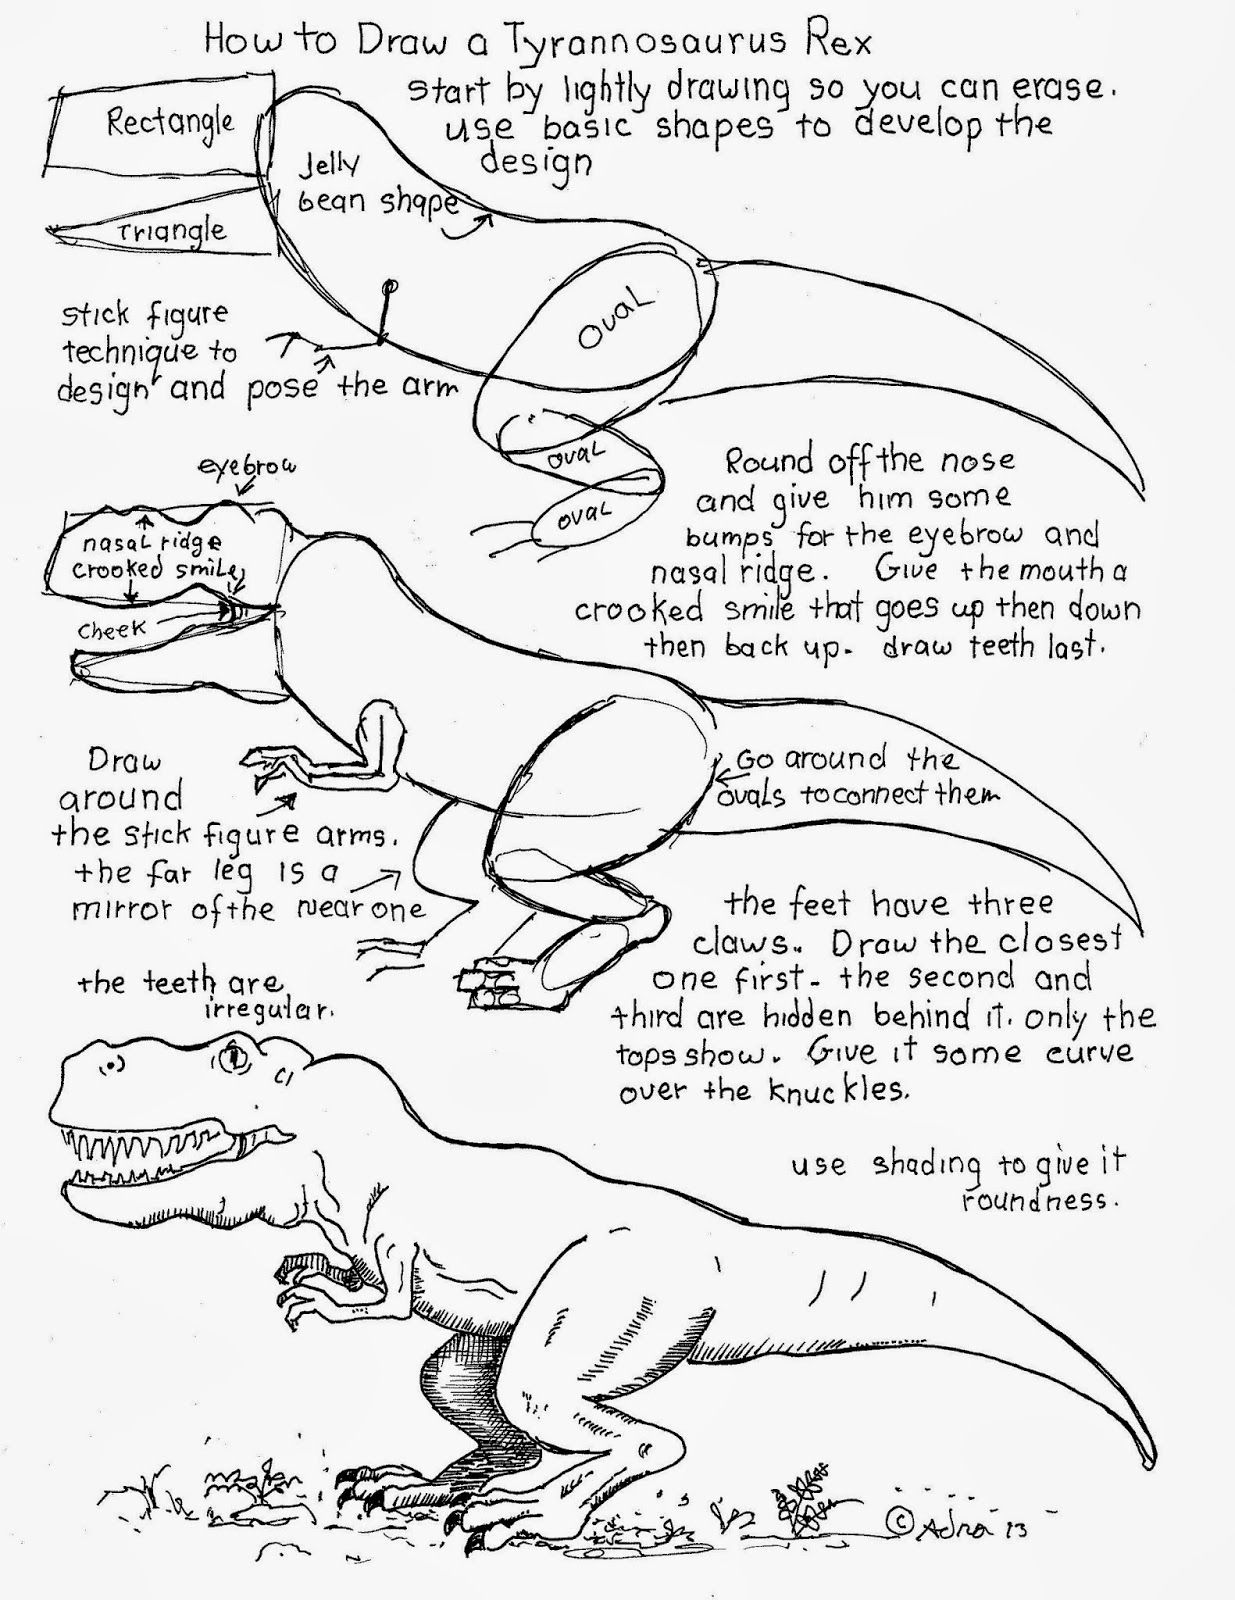 How To Draw A Tyrannosaurus Rex Worksheet